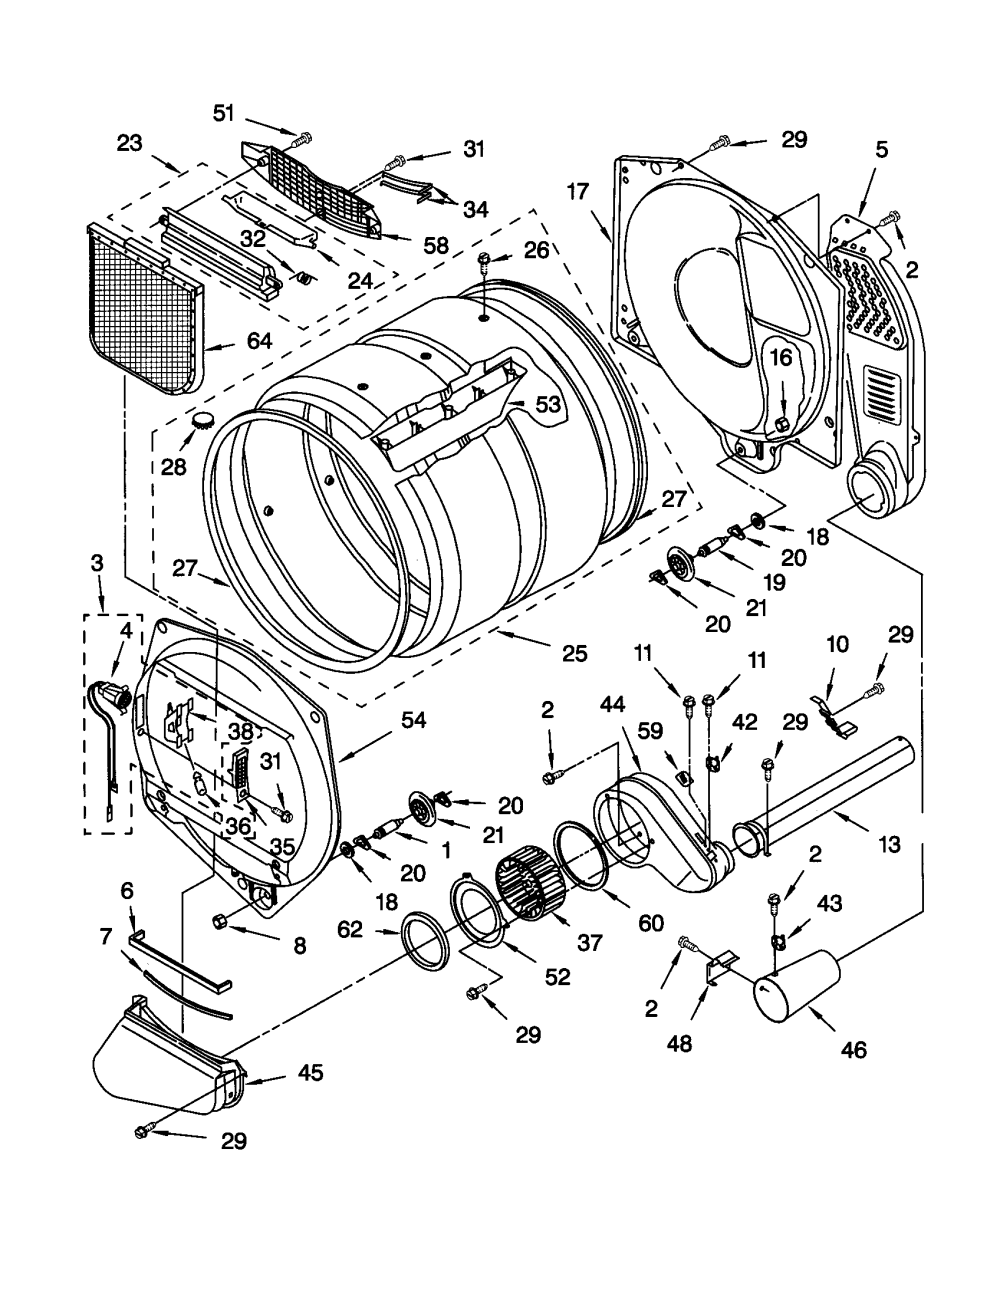 medium resolution of kenmore elite he4 dryer wiring diagram trusted wiring diagram kenmore 110 washer diagram kenmore dryer model